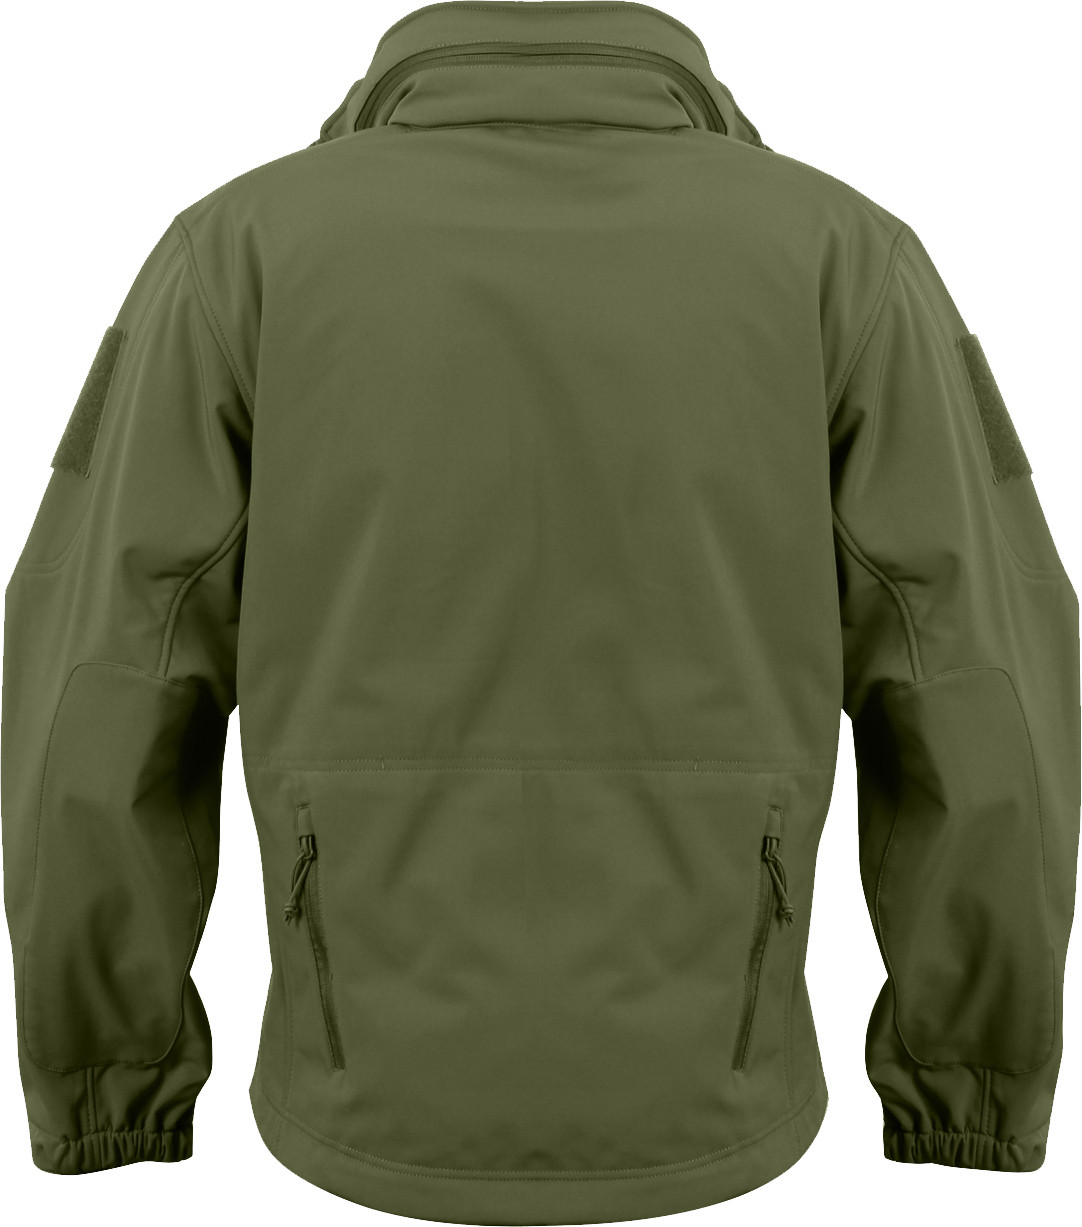 Olive Drab Military Special Operations Tactical Soft Shell Jacket 91ca9ebe27f